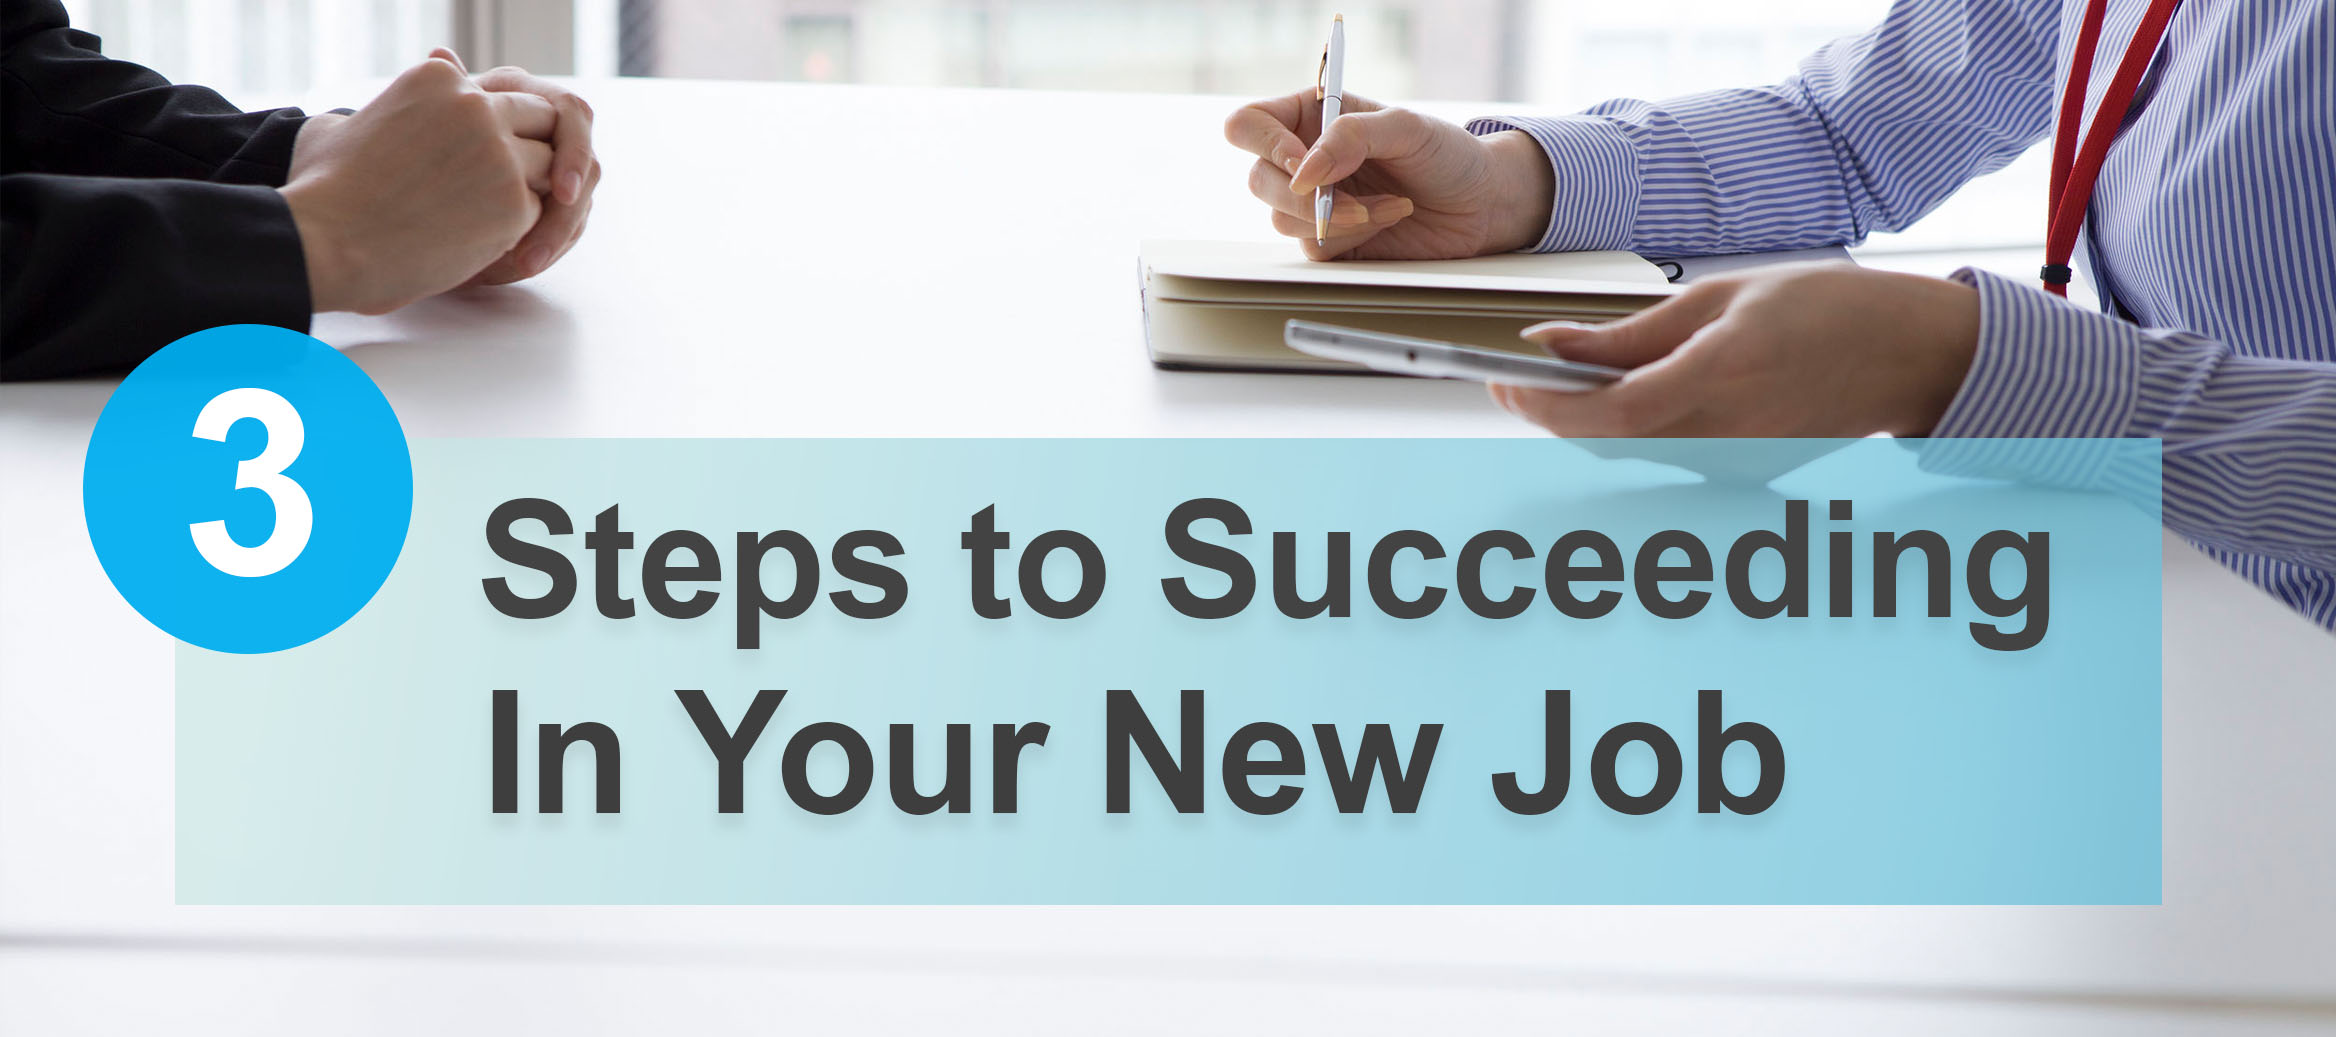 3 Steps to Succeeding in Your New Job